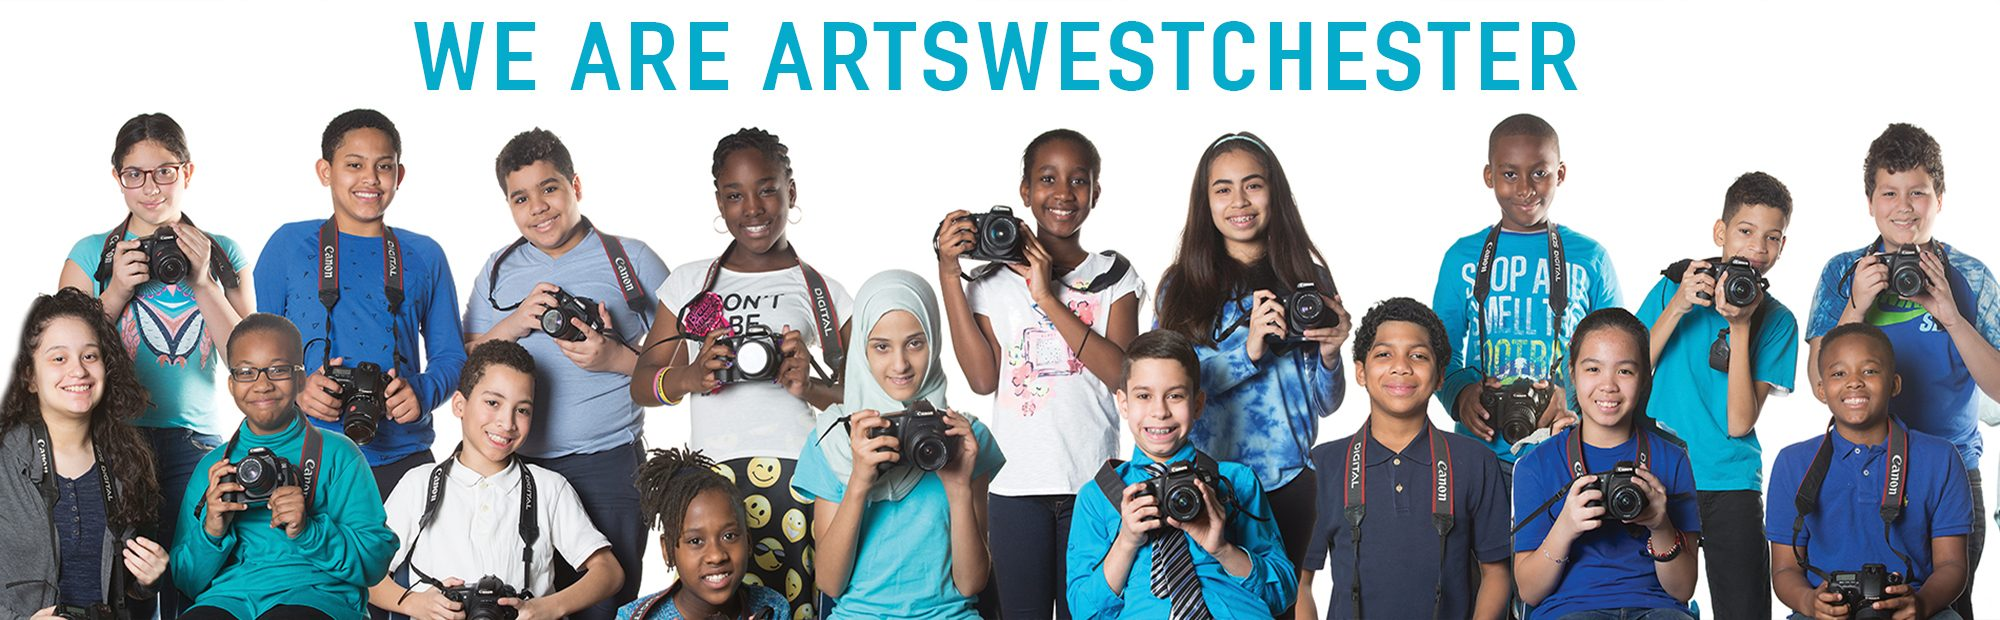 we-are-artswestchester